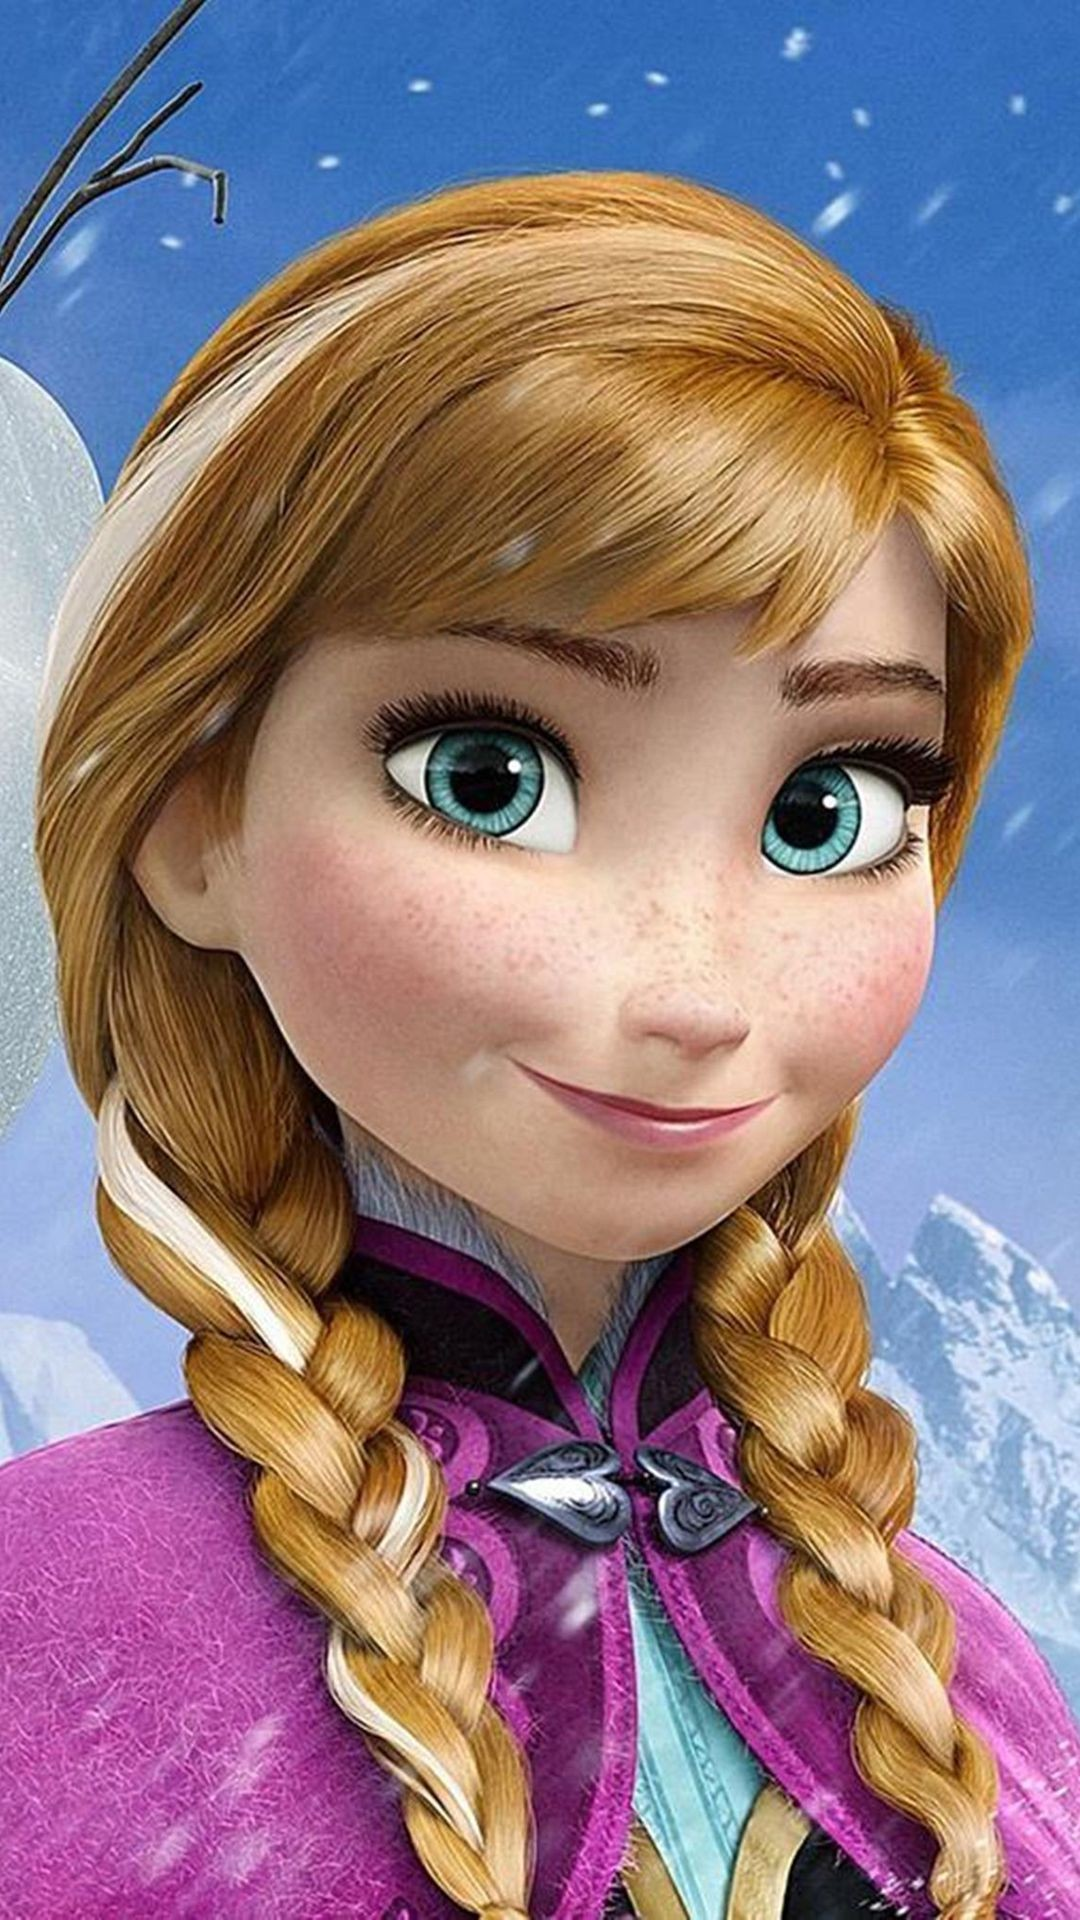 Htc One M8 Wallpaper Hd Frozen Anna Best Htc One Wallpapers Free And Easy To